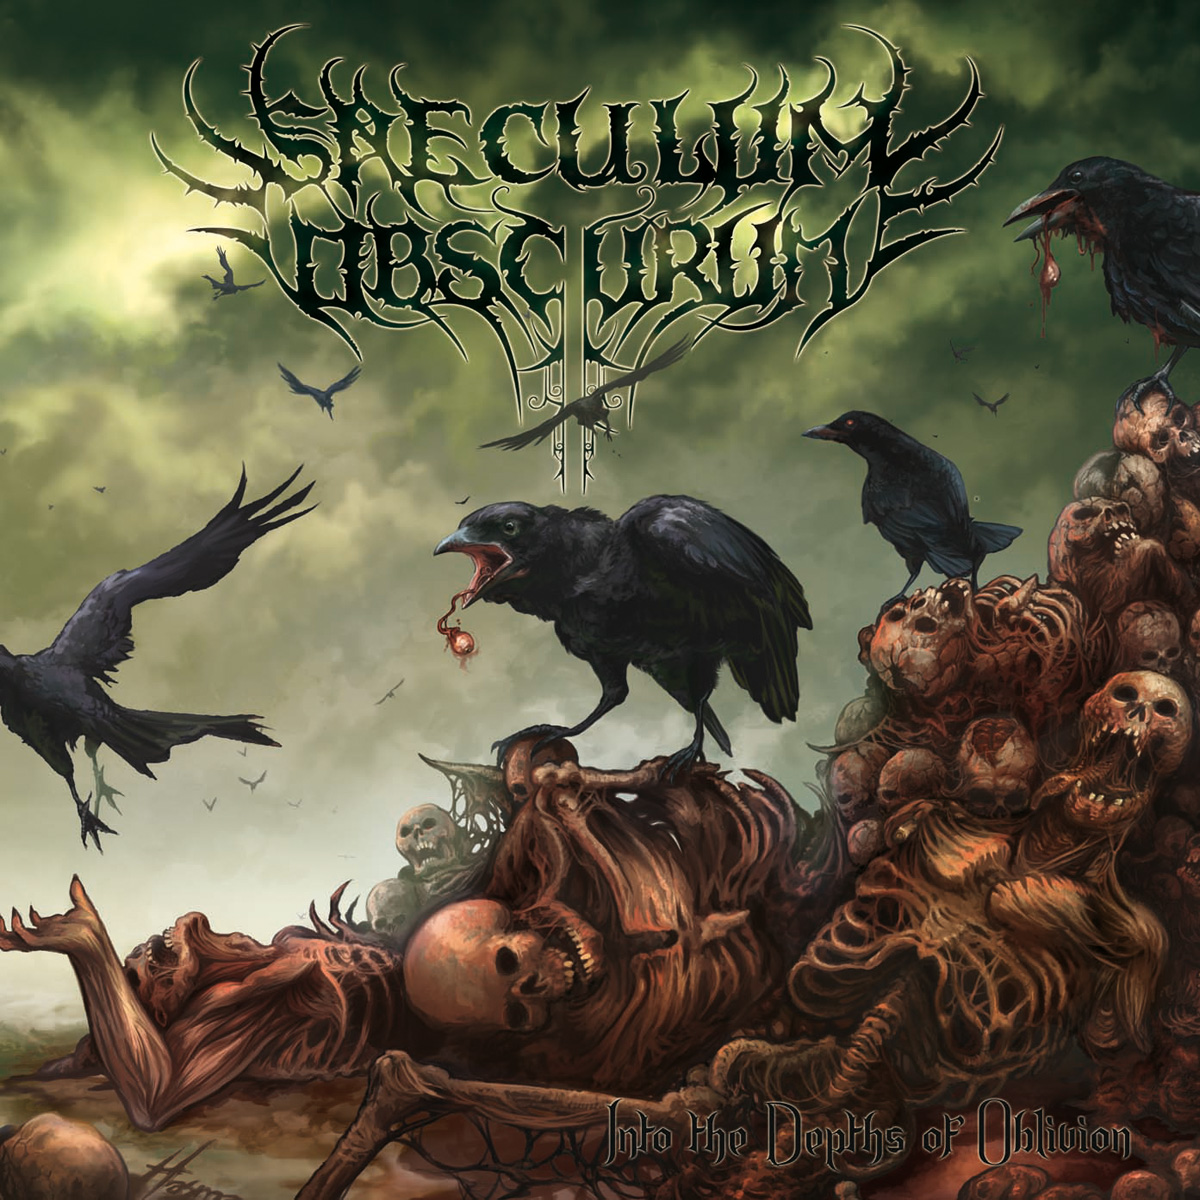 Saeculum Obscurum – Into the Depths of Oblivion Review